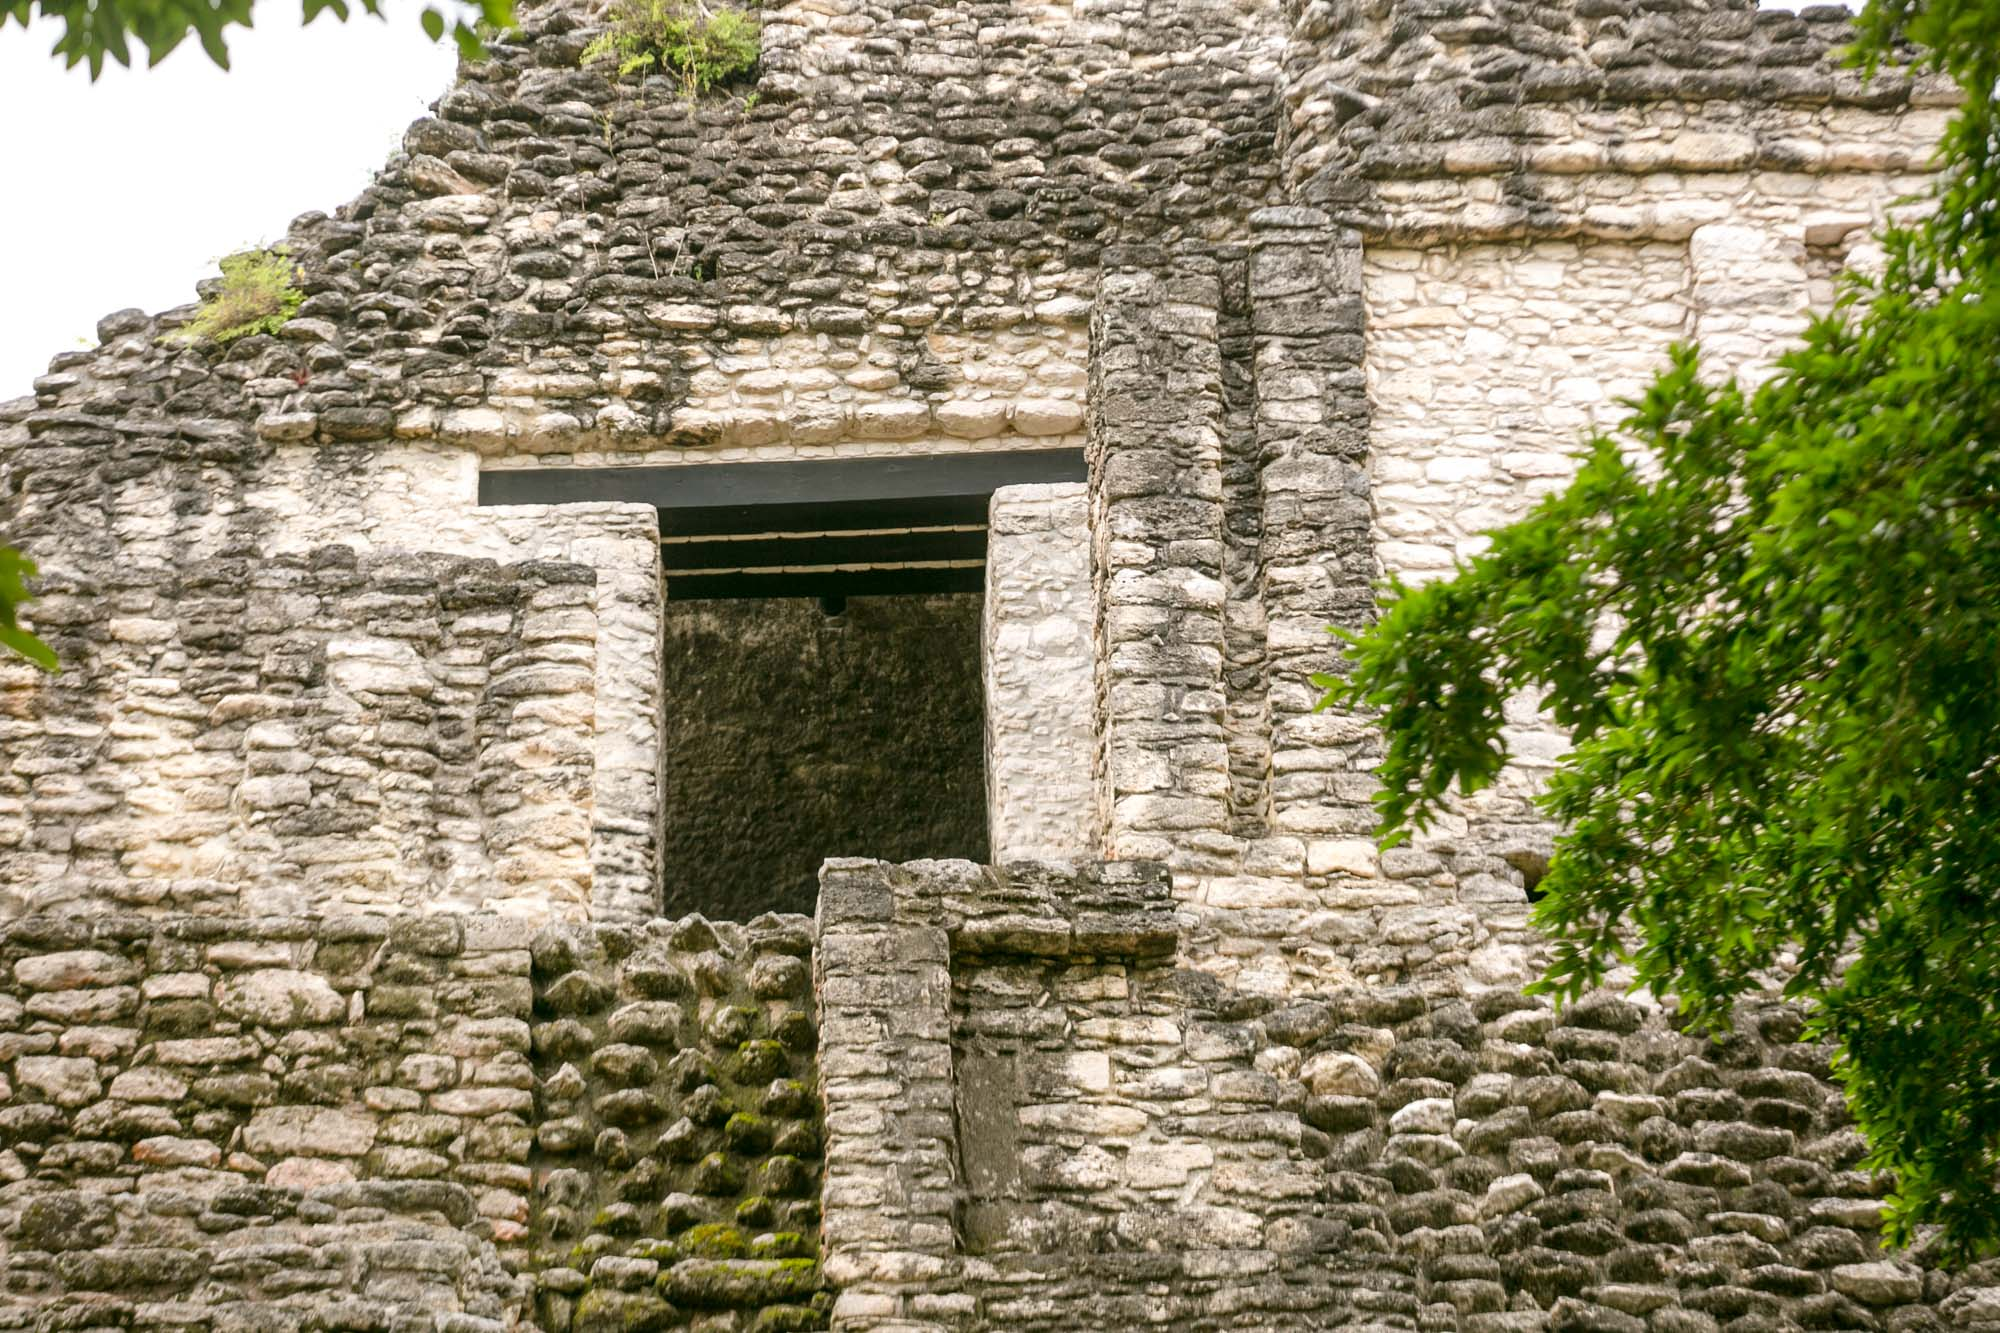 Part of the Mayan ruins of Dzibanche in Mexico